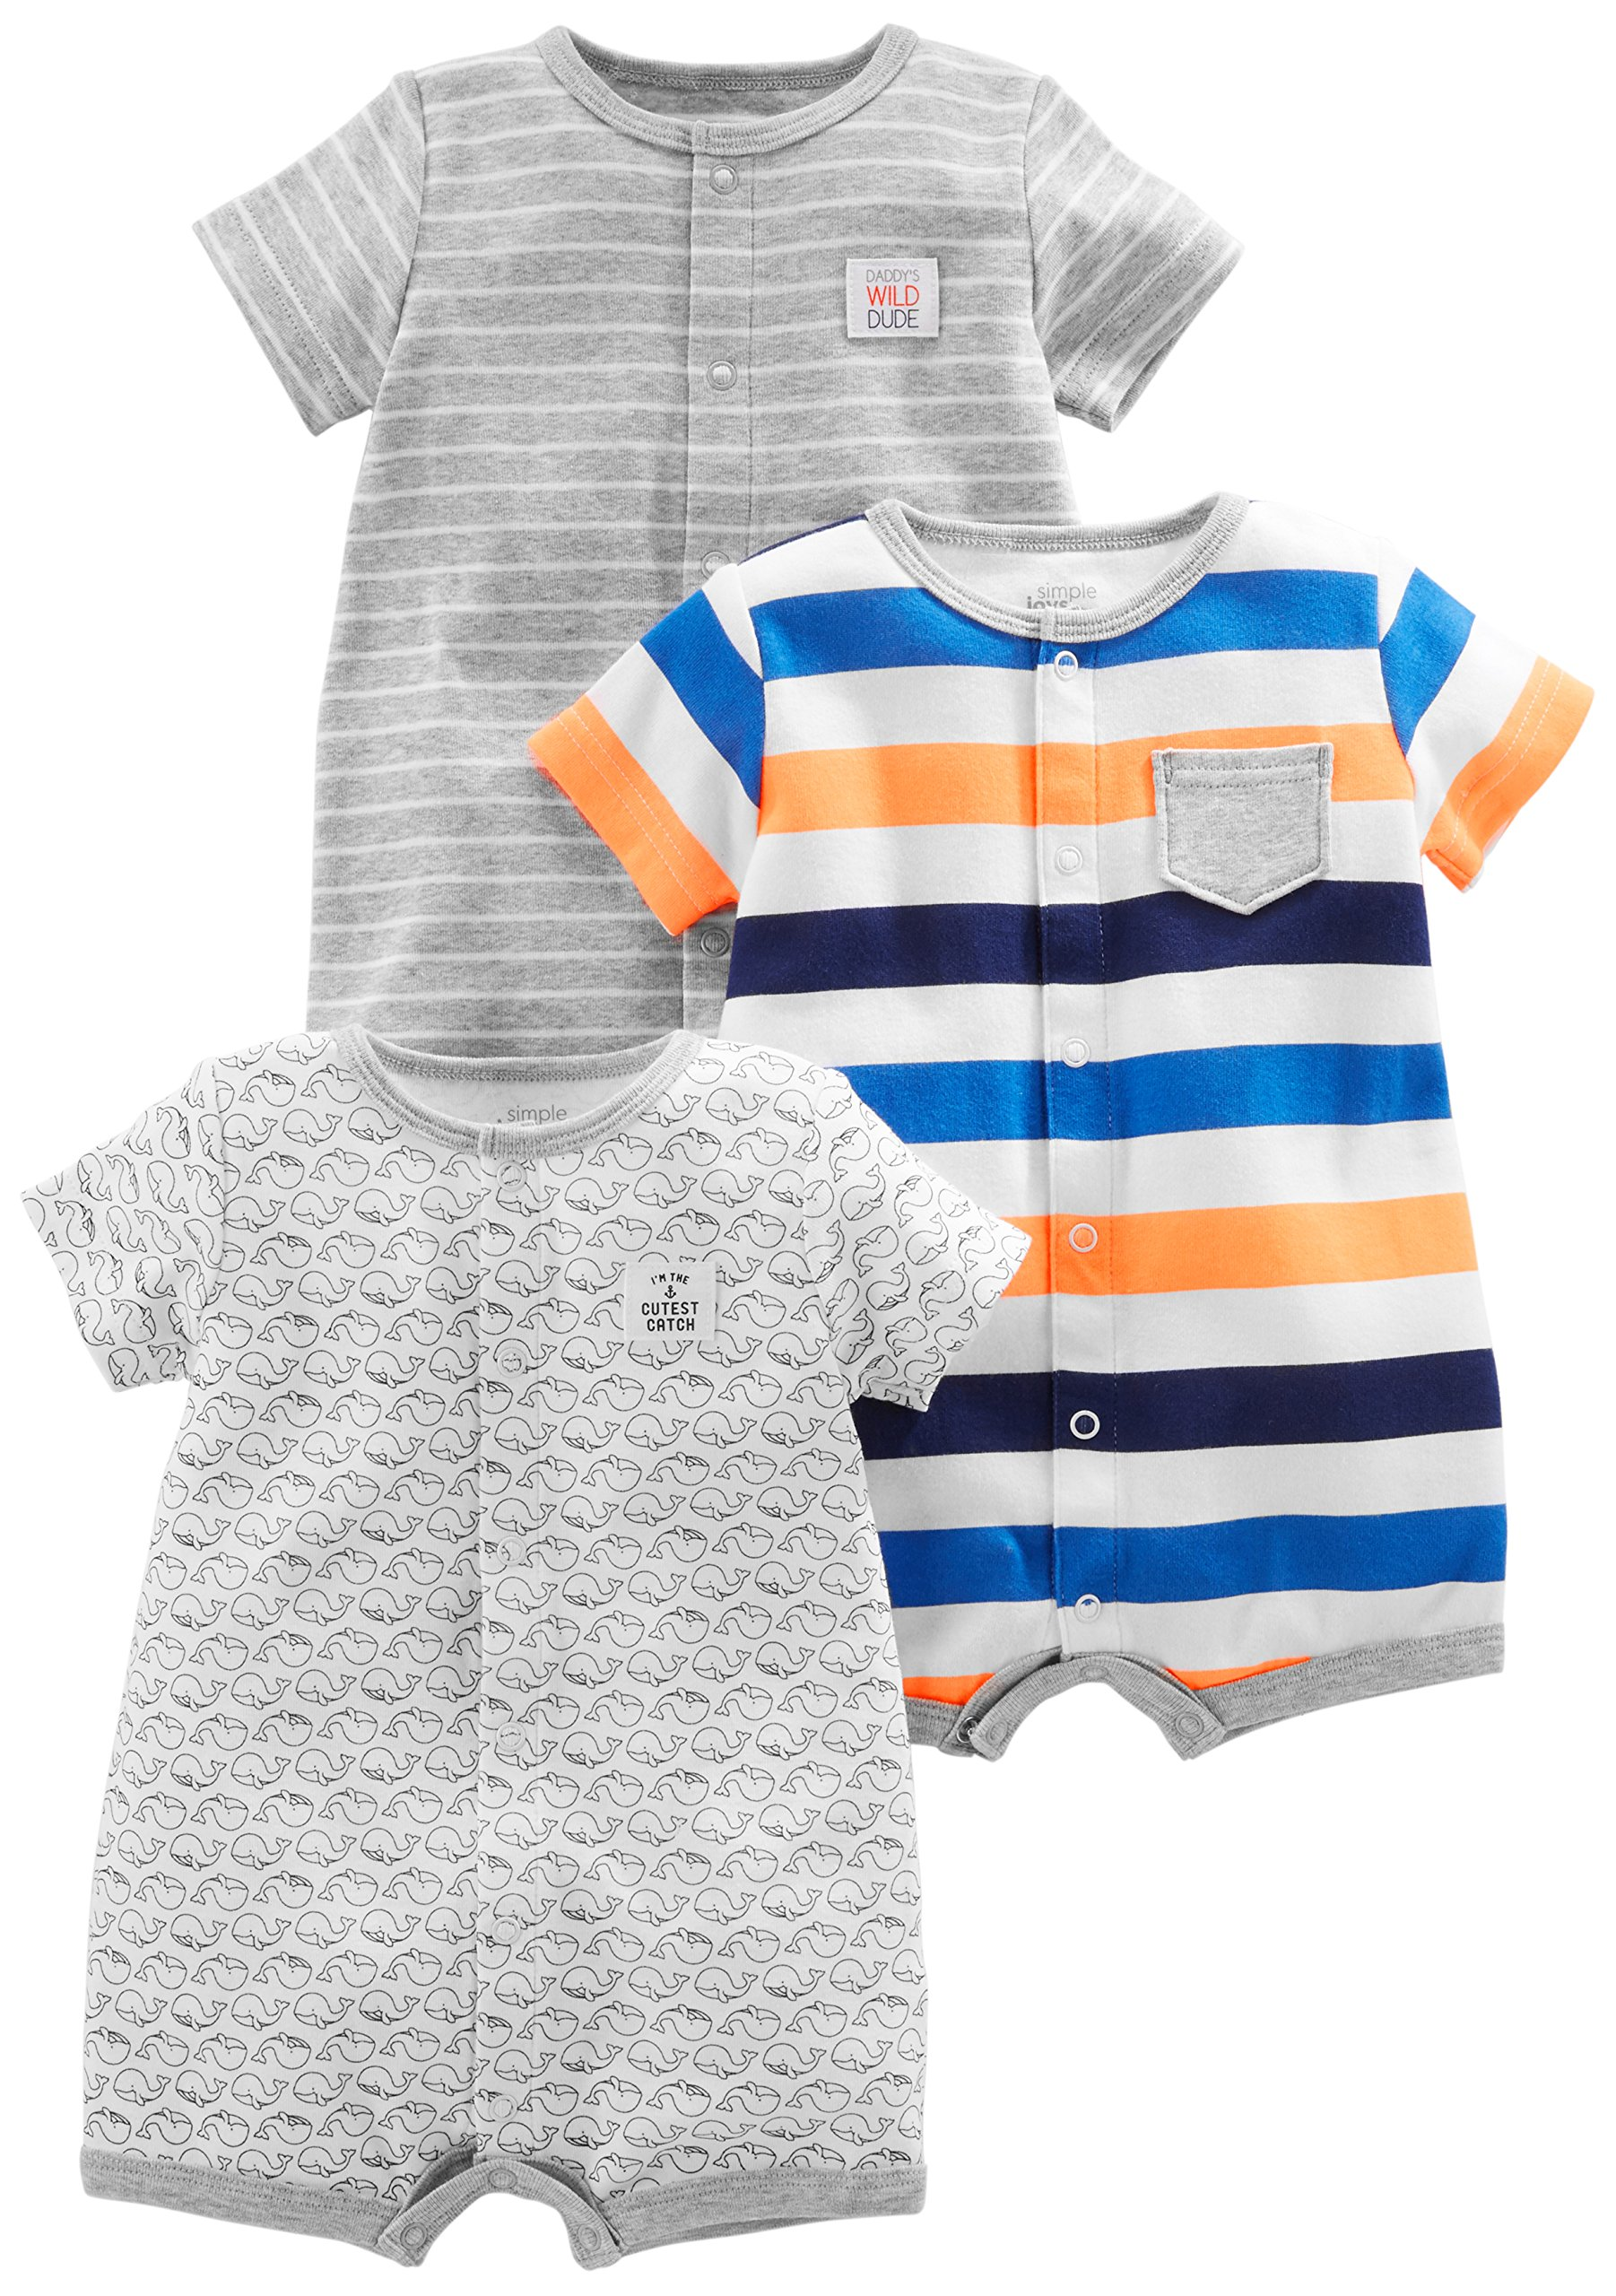 Simple Joys by Carters Baby Boys 3-Pack Snap-up Rompers